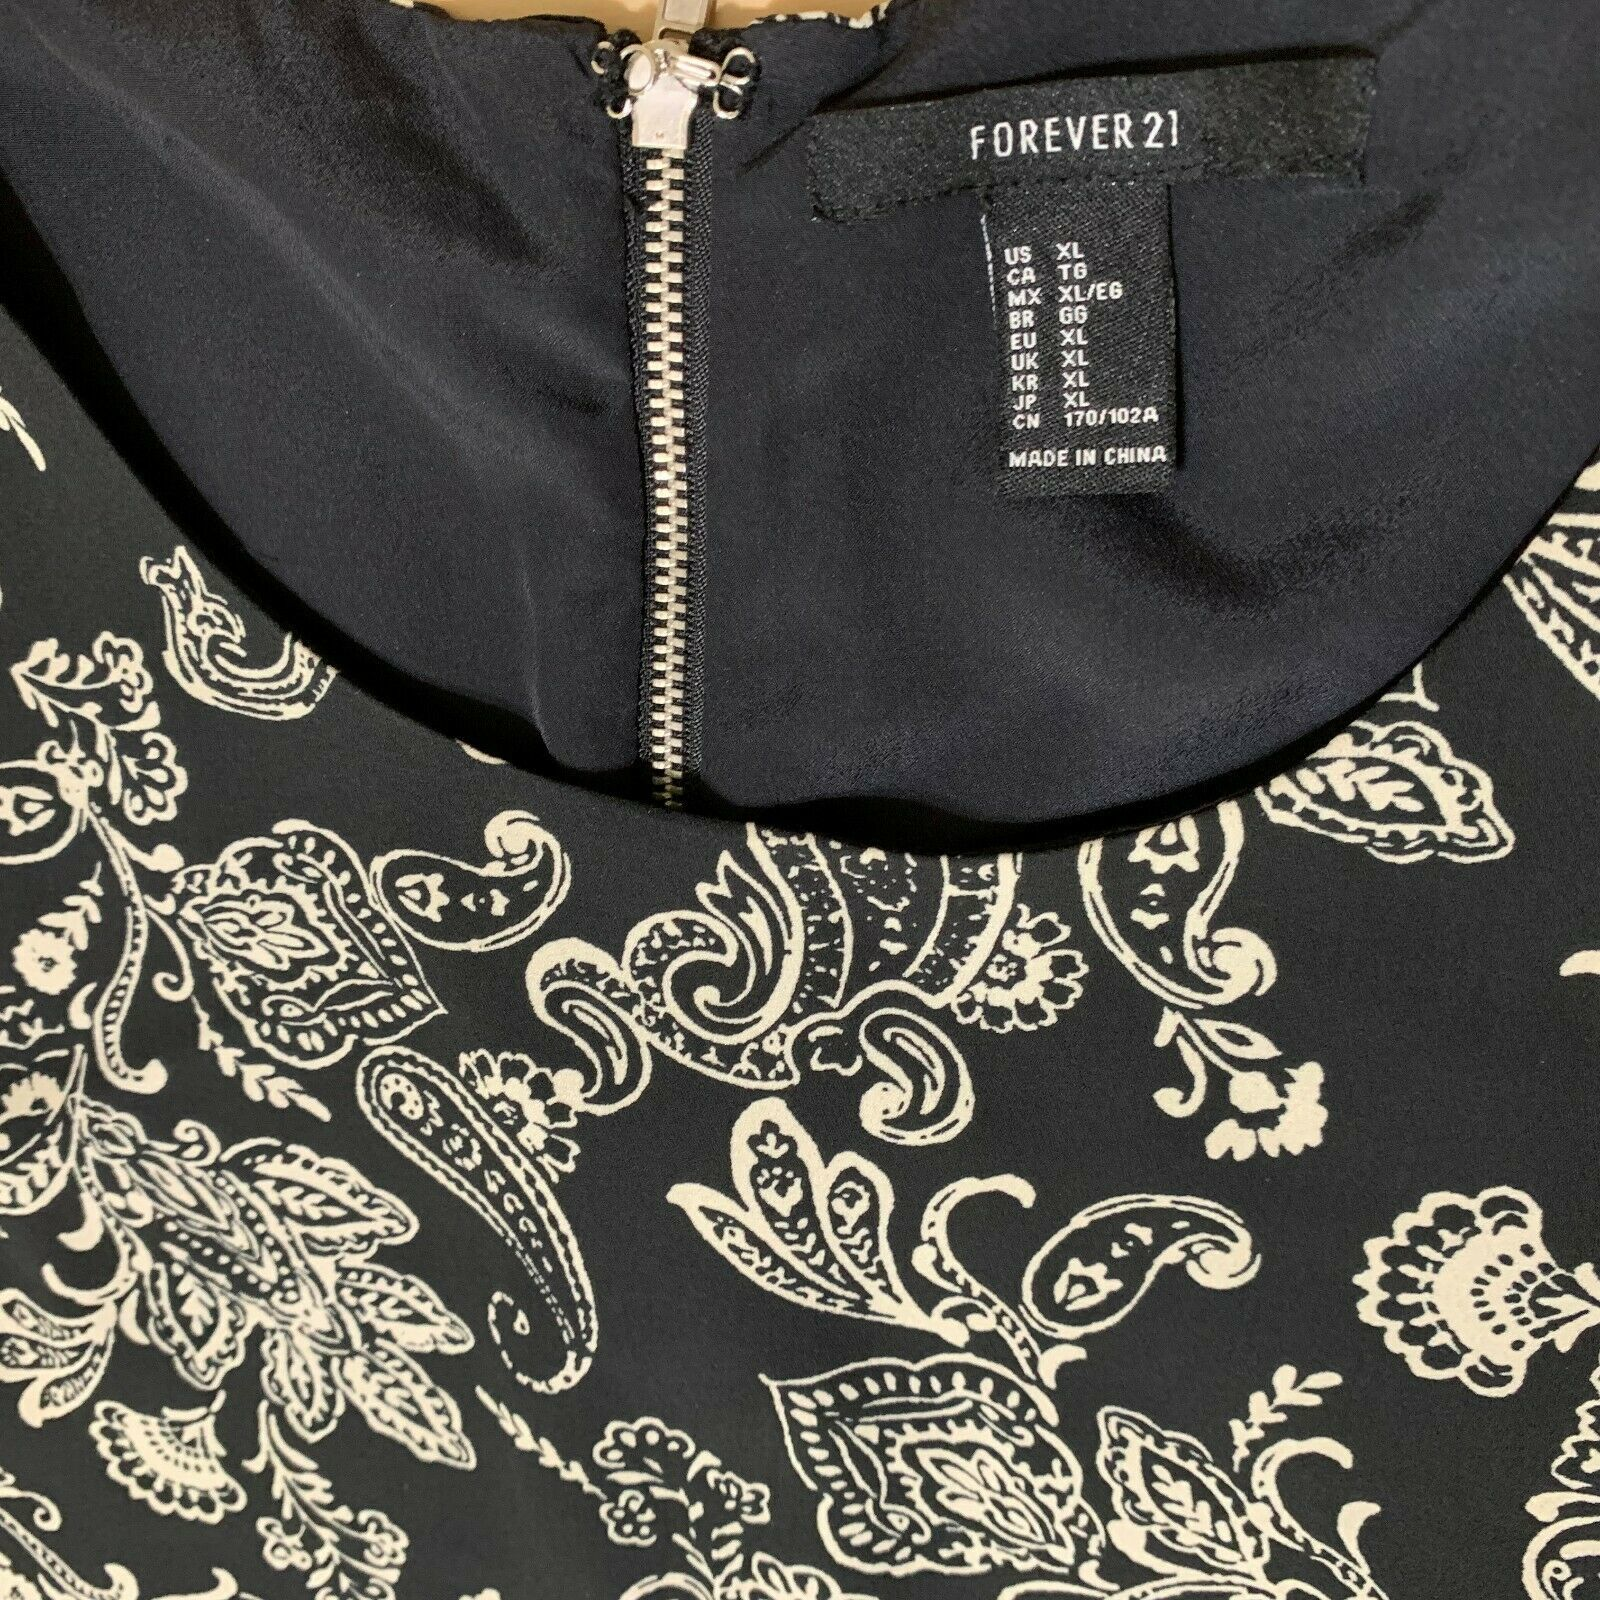 Forever 21 contemporary dress black and cream print size XL